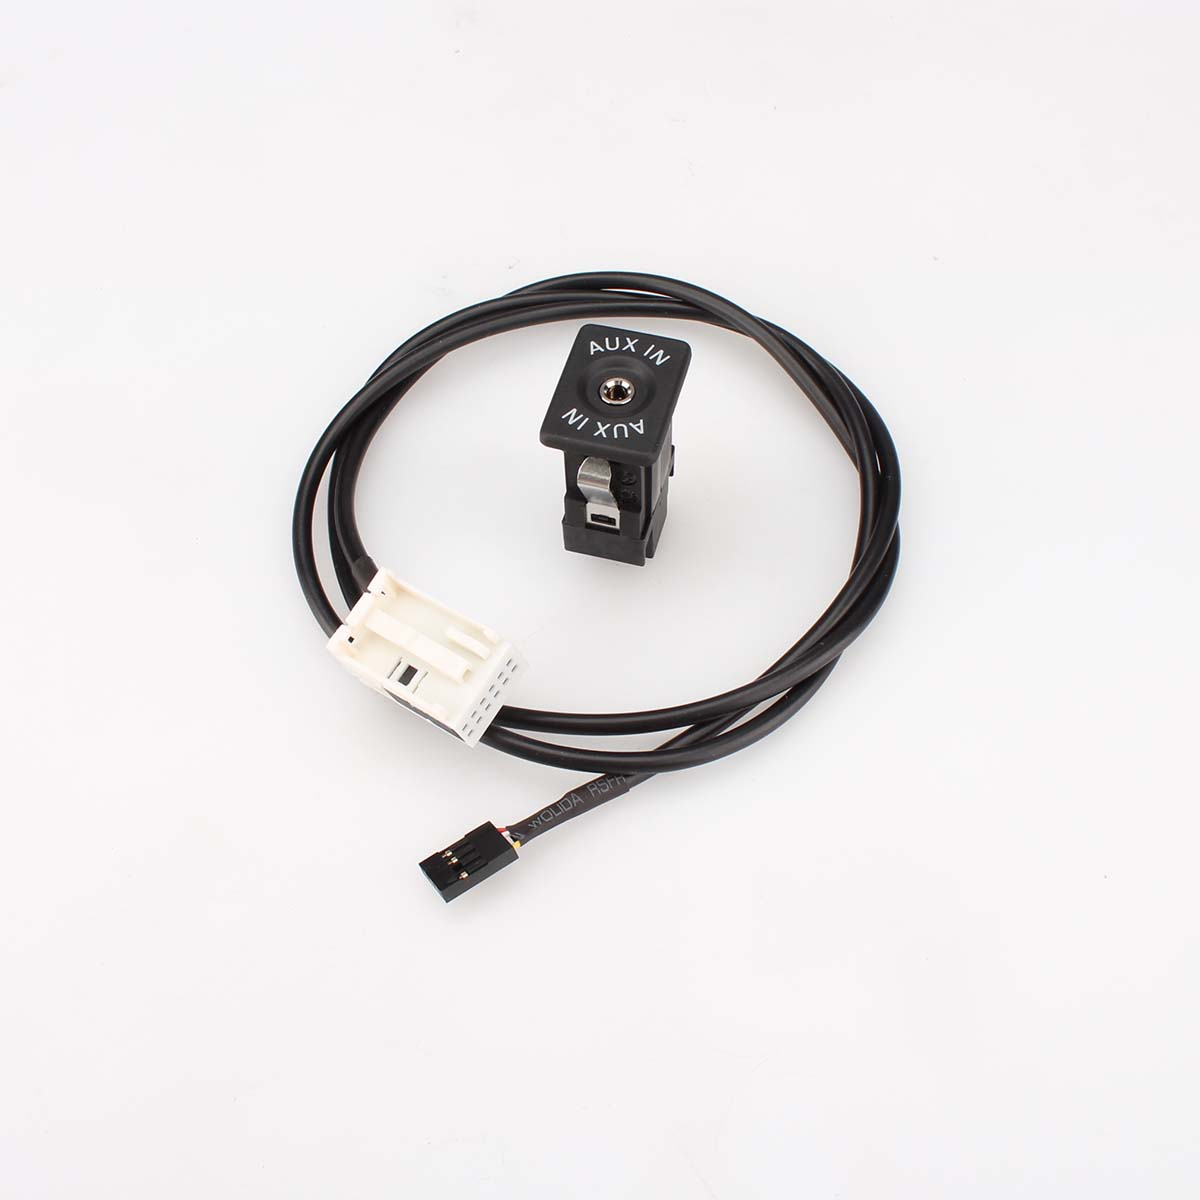 OEM Audio AUX IN Jack Radio Stecker Adapter Schalter Kabel für VW ...